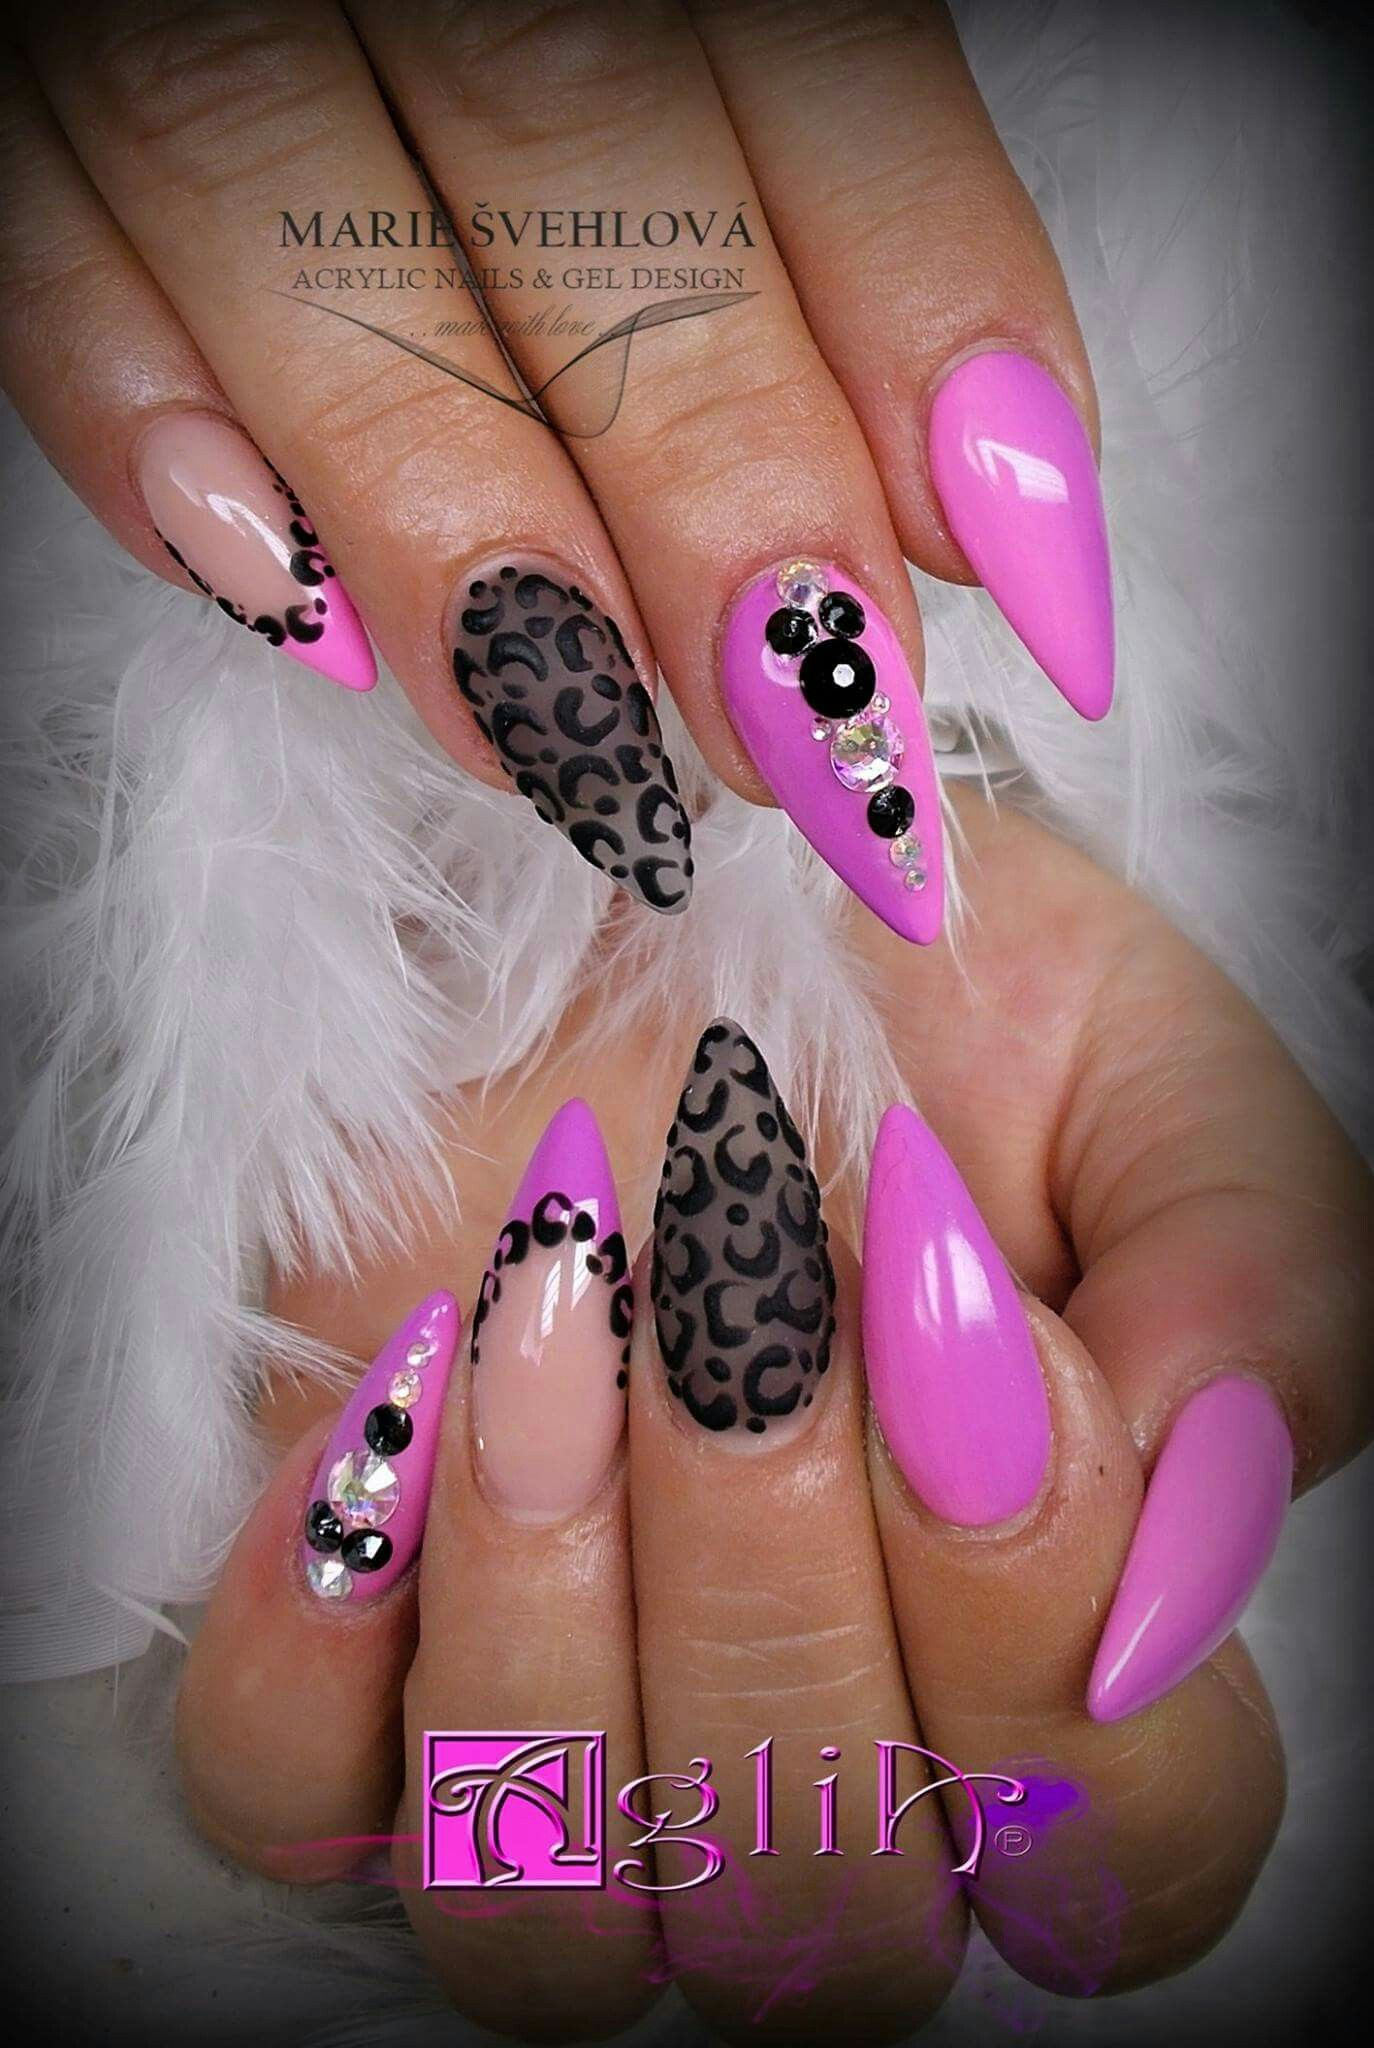 Pin By Acrylic Nails Gel Design On My Work Acrylic Nails Gel Design